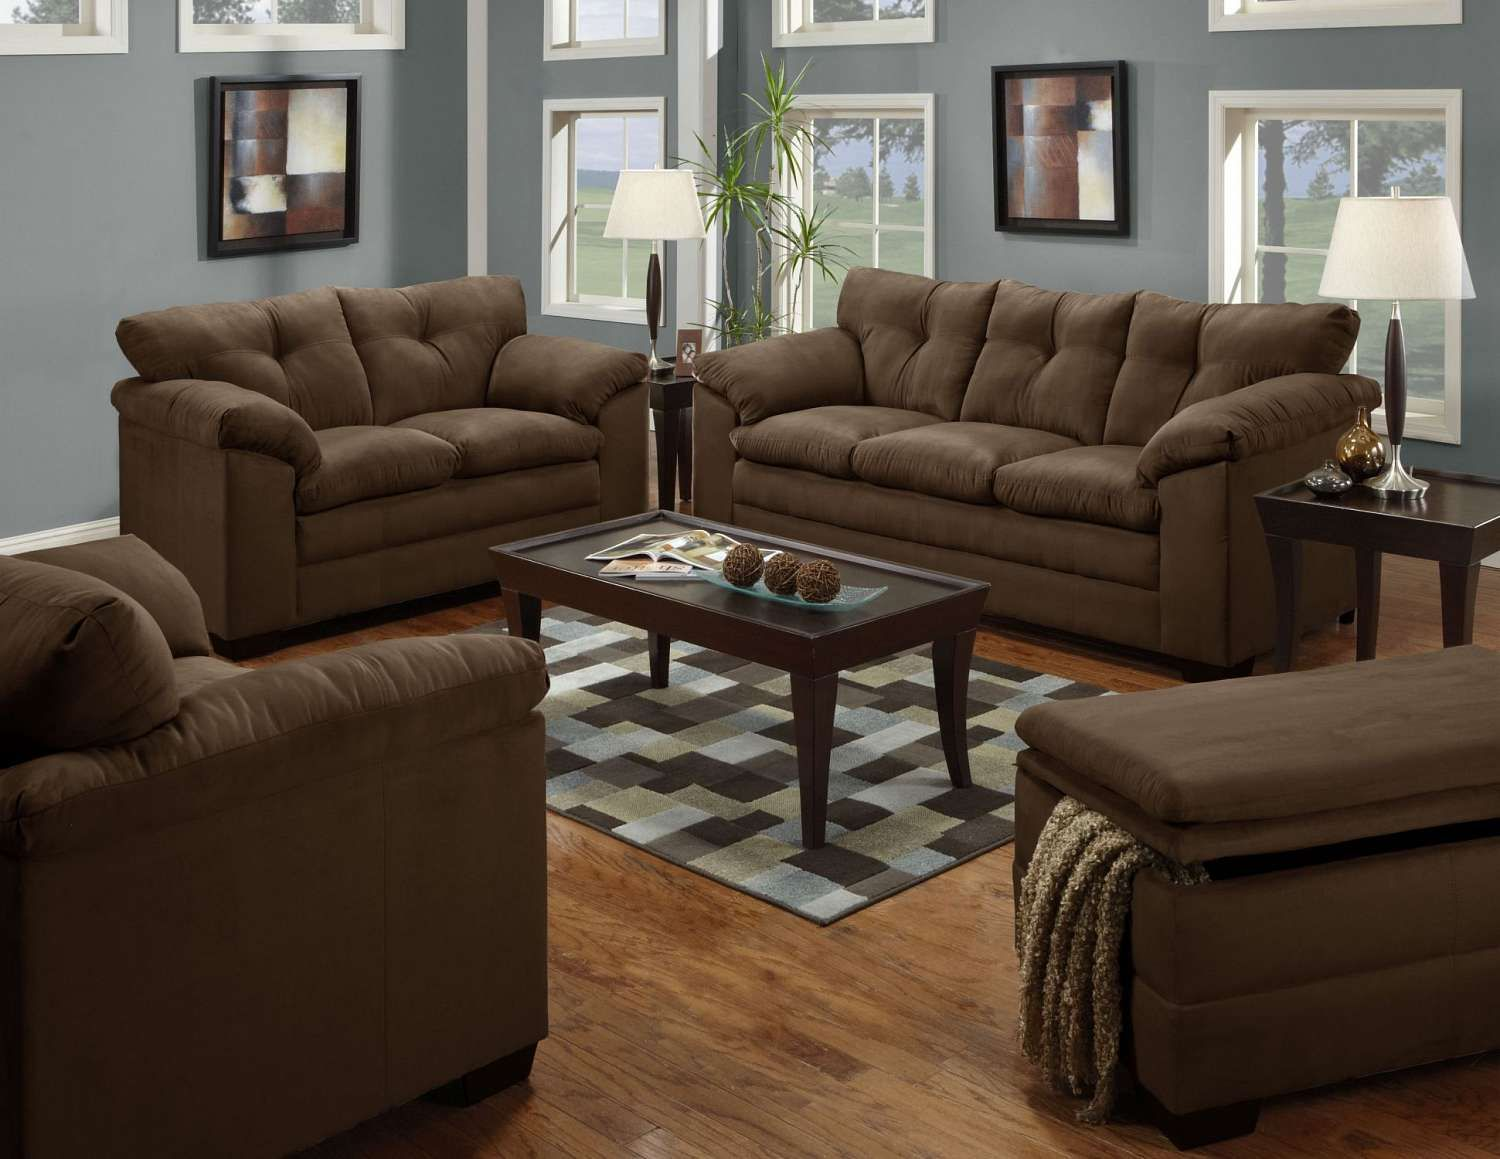 Ditch The Handmedowns Or Old Craigslist Furniture And Update Pleasing Craigslist Living Room Set Review